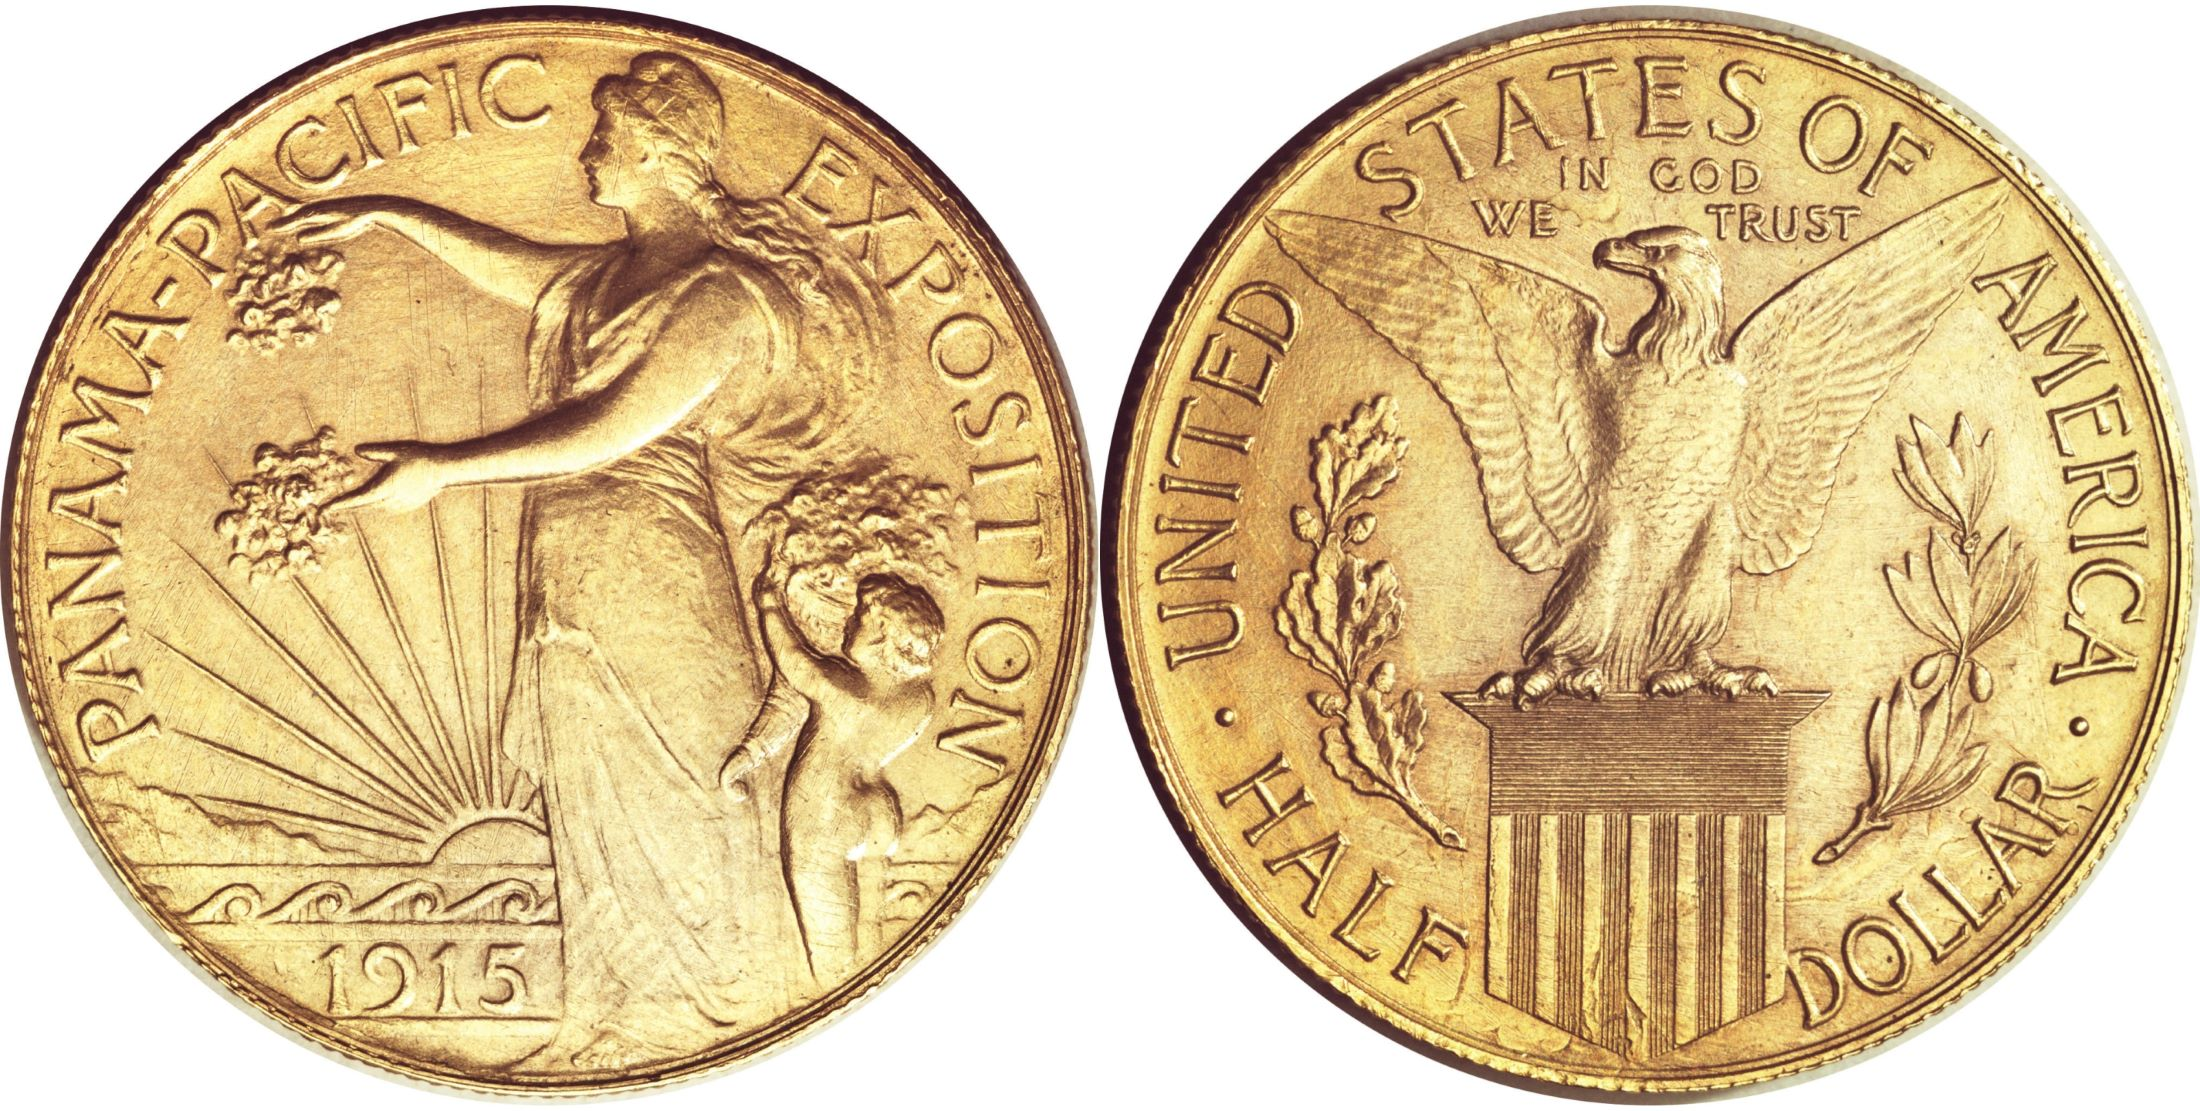 """PR63 estimated grade<BR>Image courtesy of <a href=""""http://www.ha.com"""" target=""""_blank"""">Heritage Numismatic Auctions</a>"""